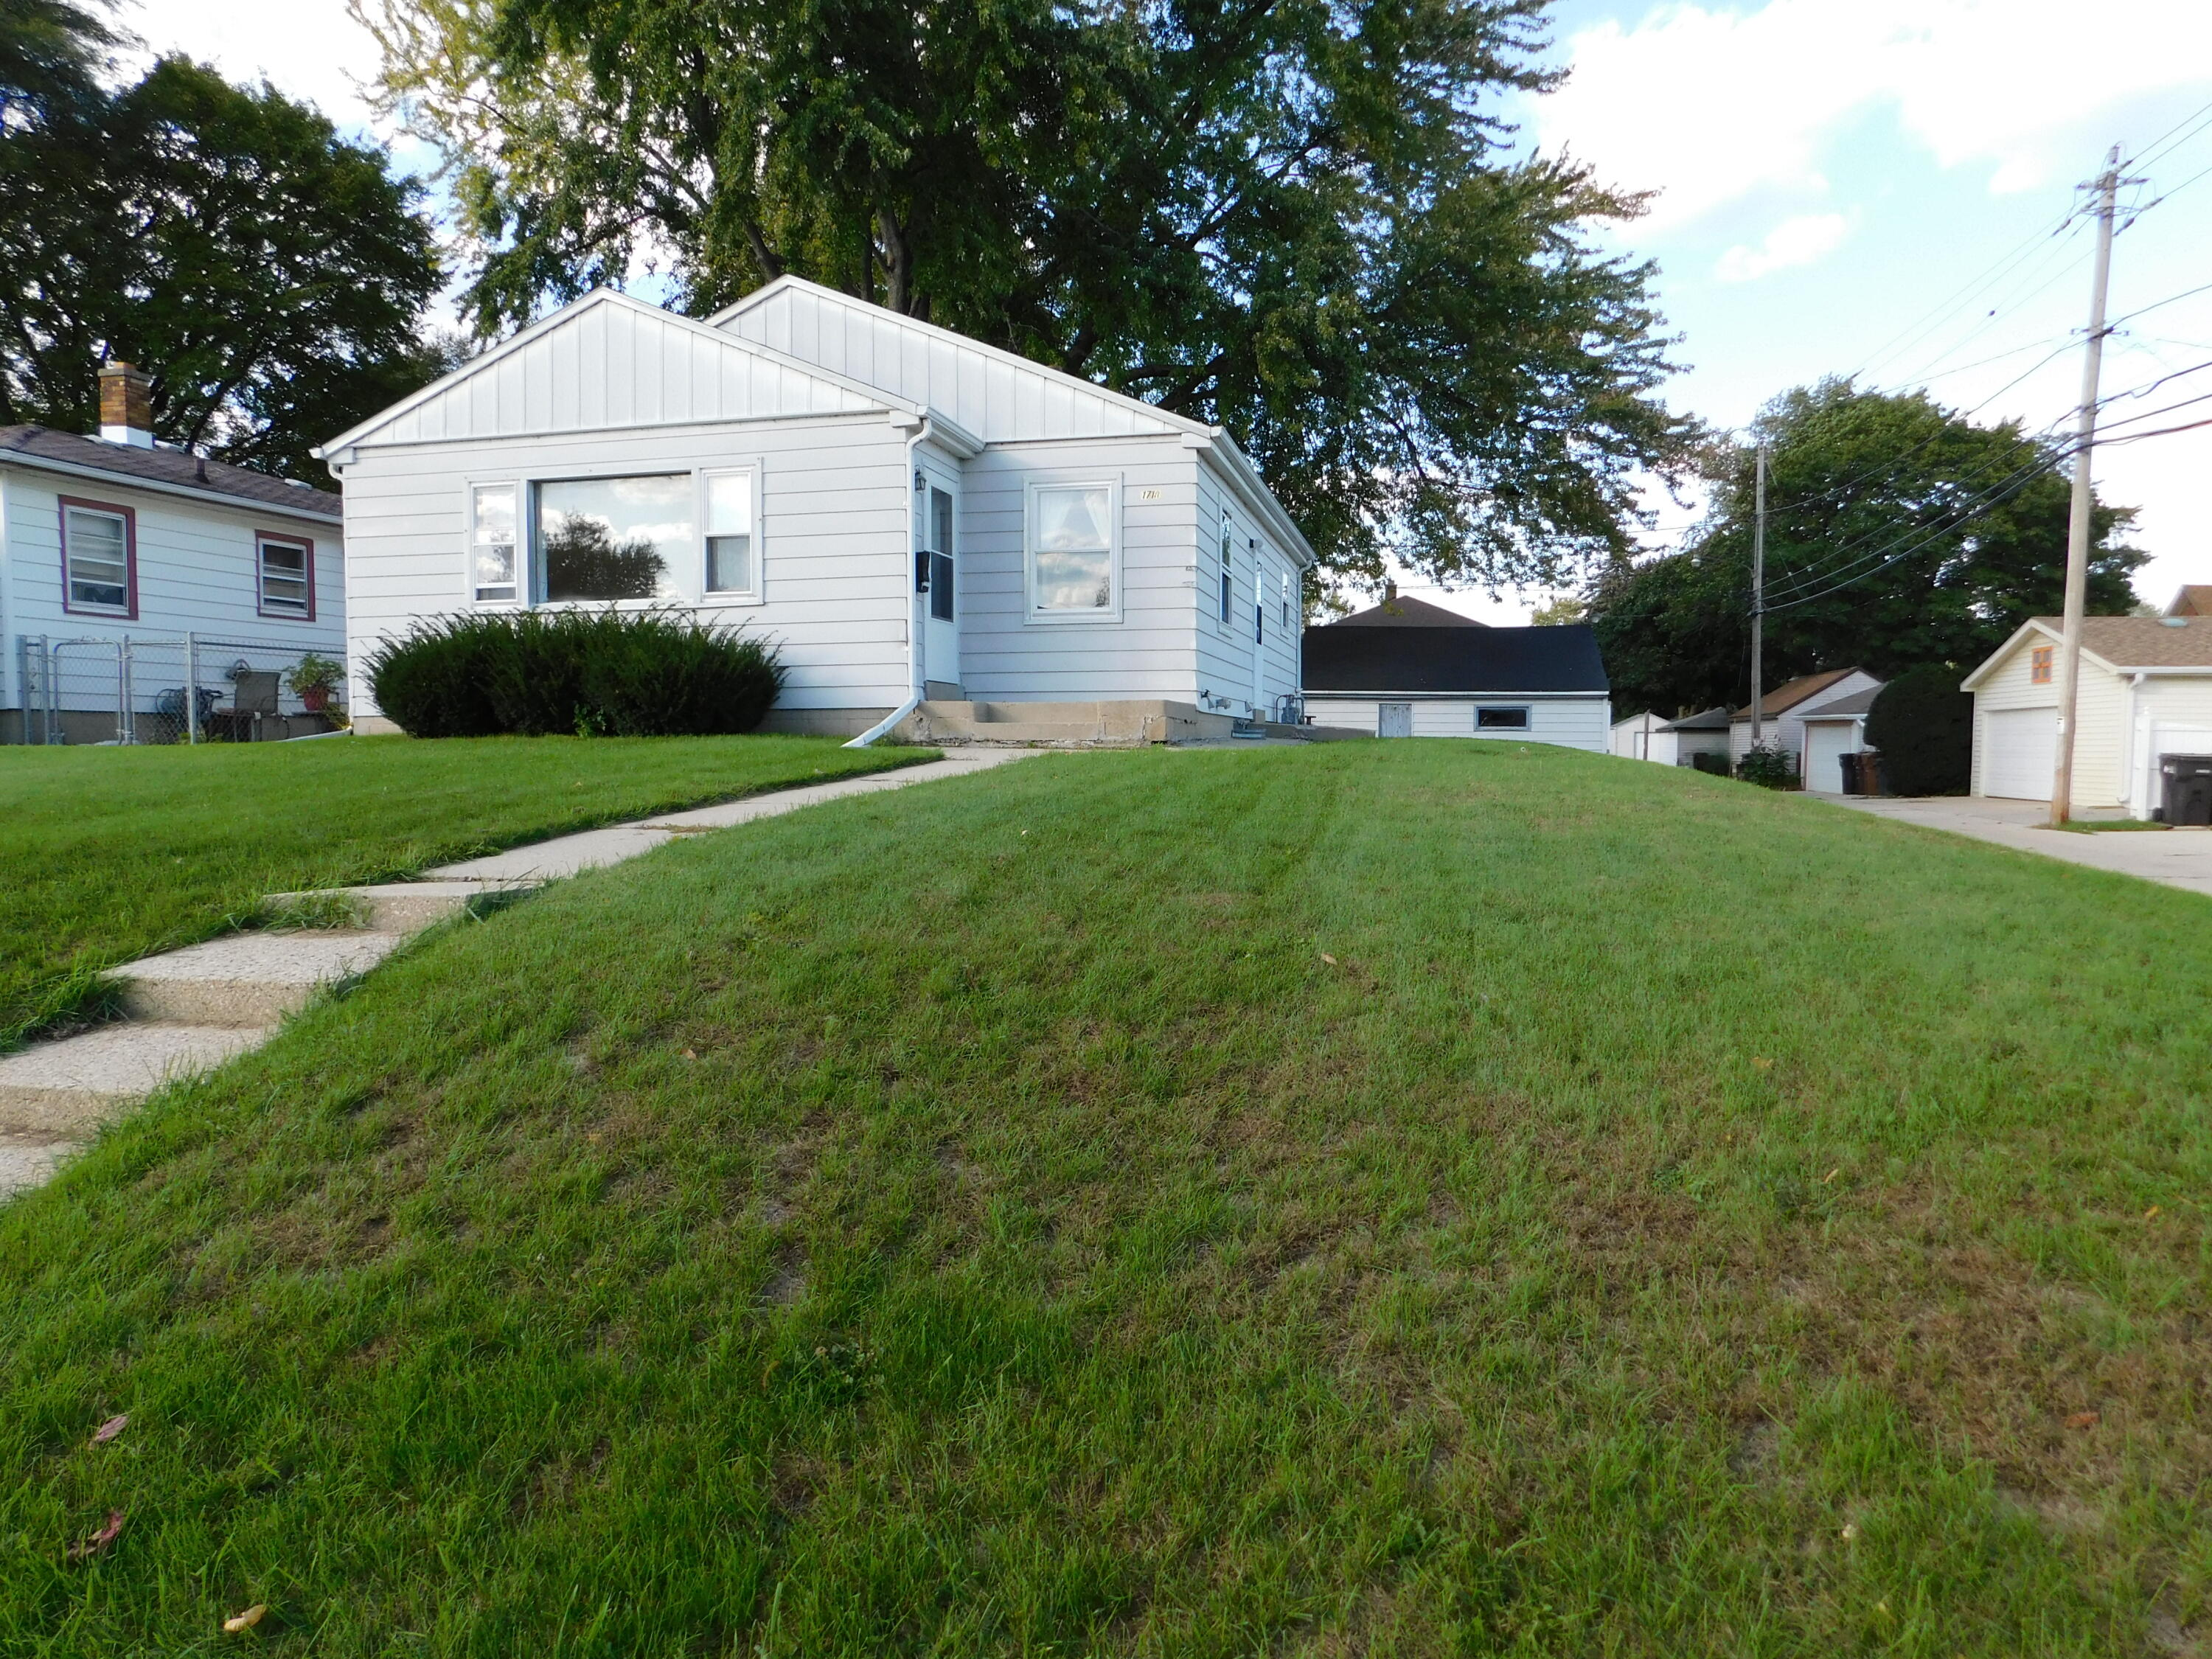 1710 Maple St, South Milwaukee, Wisconsin 53172, 3 Bedrooms Bedrooms, 5 Rooms Rooms,2 BathroomsBathrooms,Single-Family,For Sale,Maple St,1768279